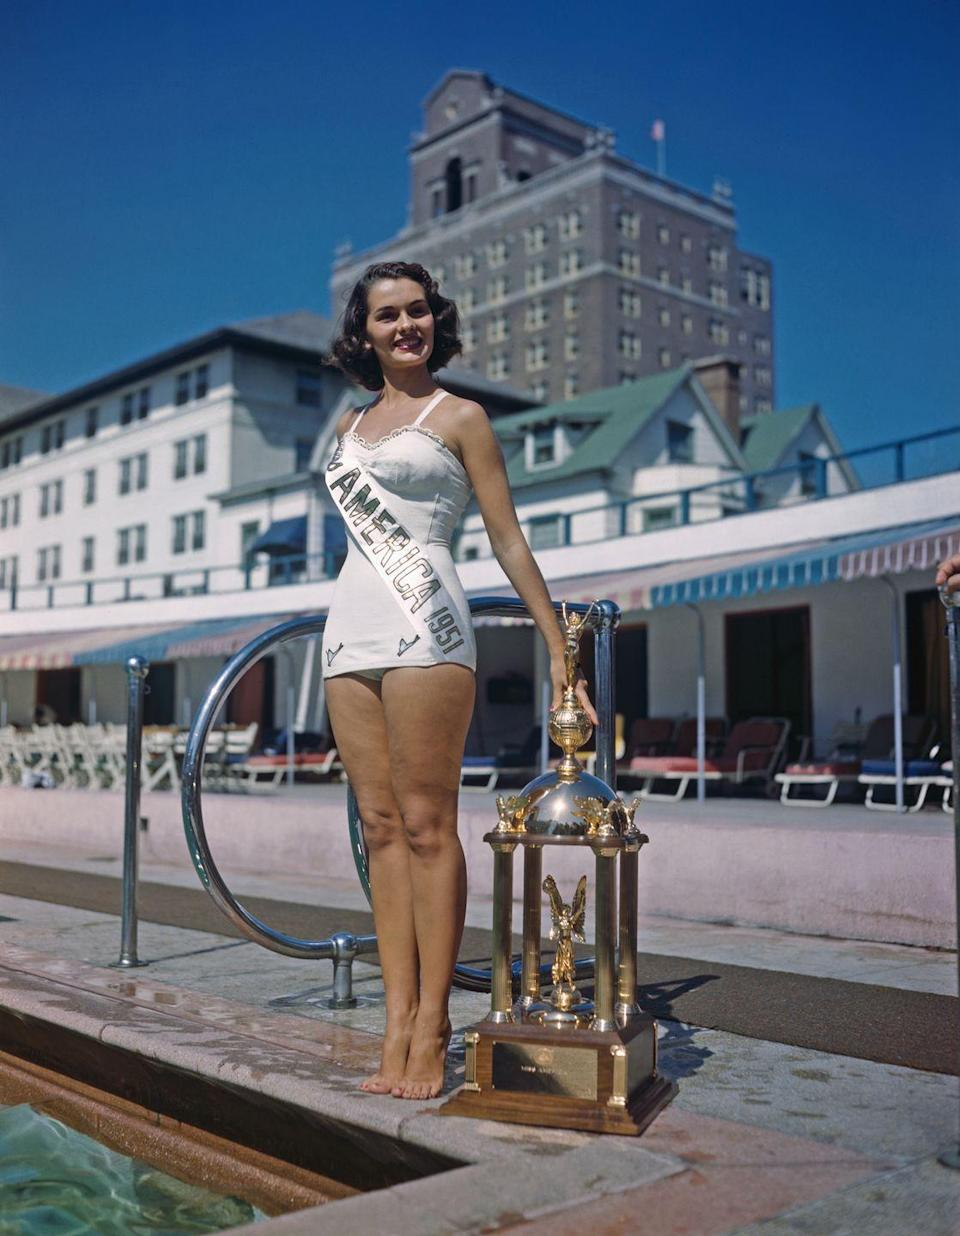 <p>Yolande Betbeze of Alabama looked perfect by the pool in a white, lace-trimmed swimsuit. She's hard to miss with that shiny trophy and matching sash.</p>